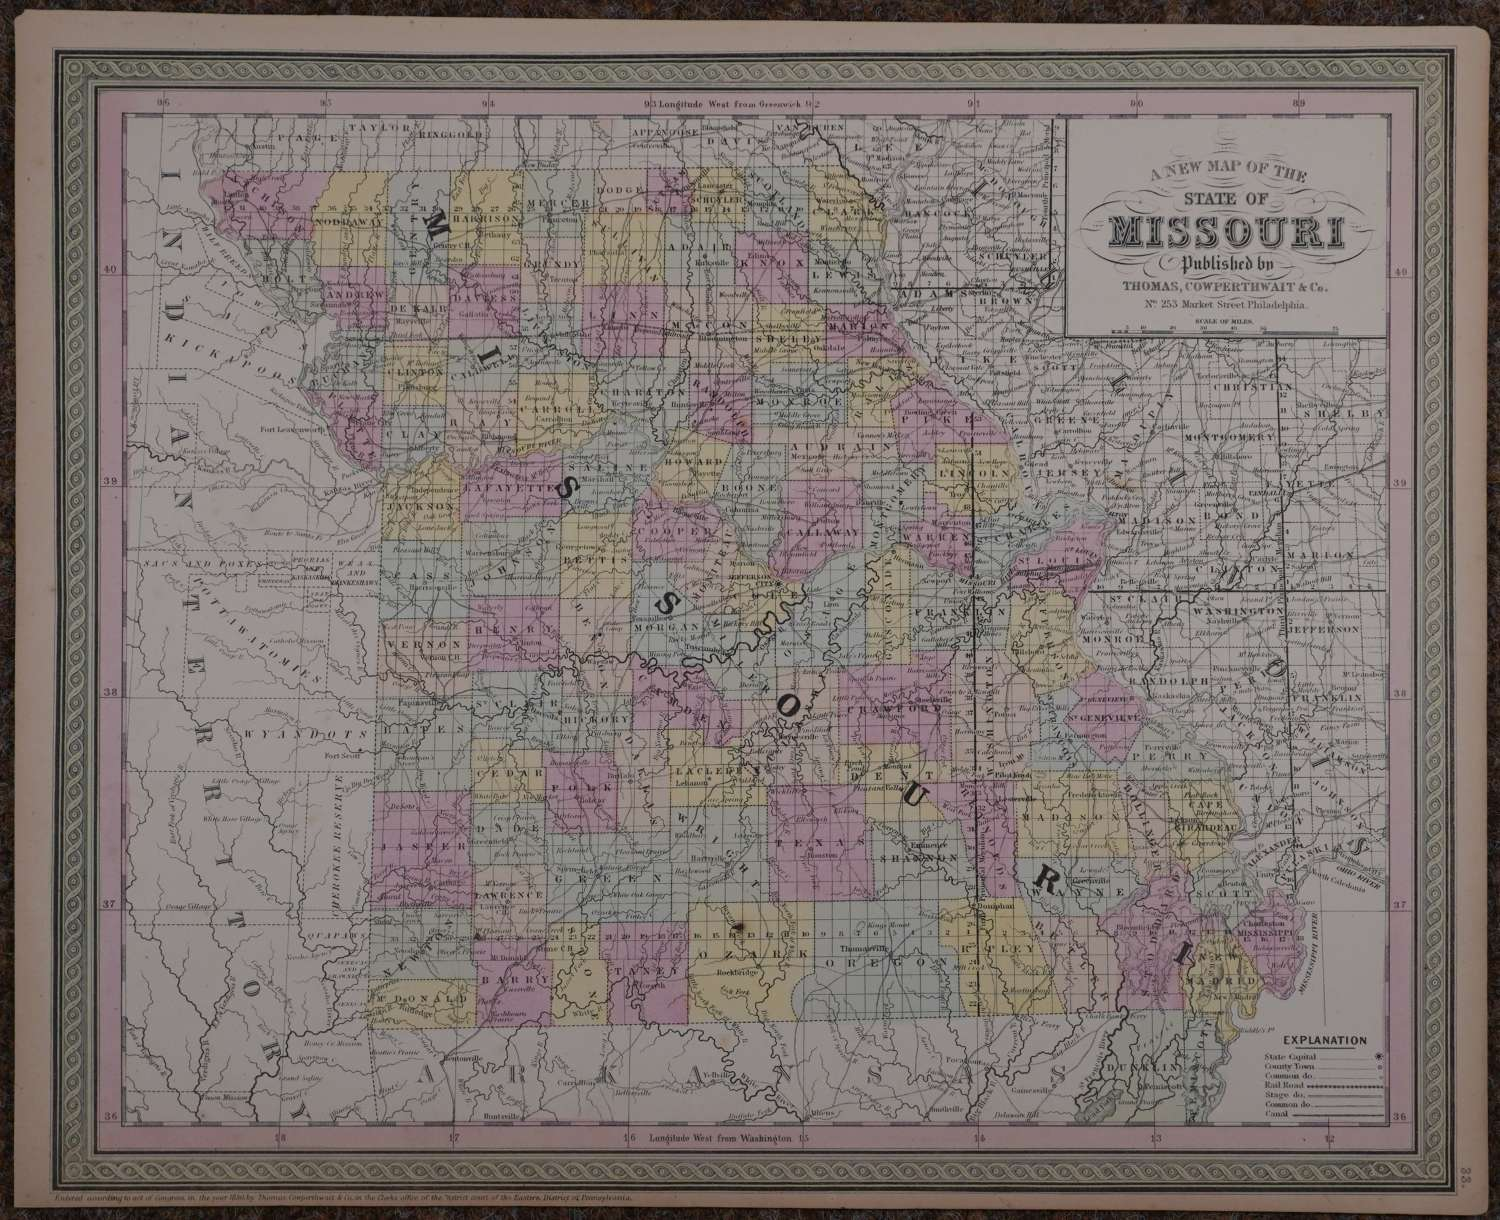 A New Map of the State of Missouri by Thomas Cowperthwait & Co